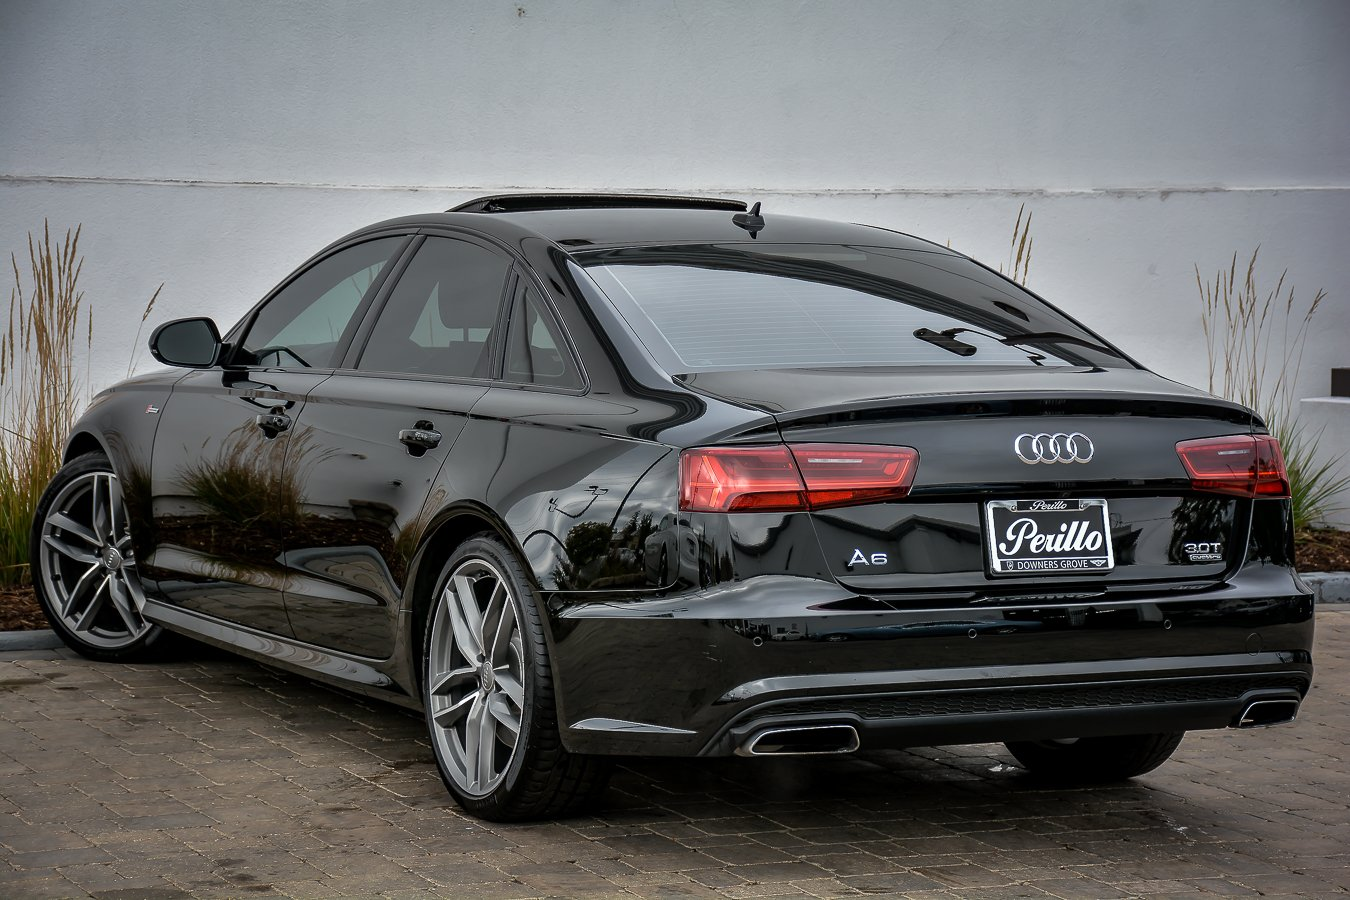 pre owned 2016 audi a6 3 0t prestige s line black optic pkg w nav 4dr car in downers grove. Black Bedroom Furniture Sets. Home Design Ideas